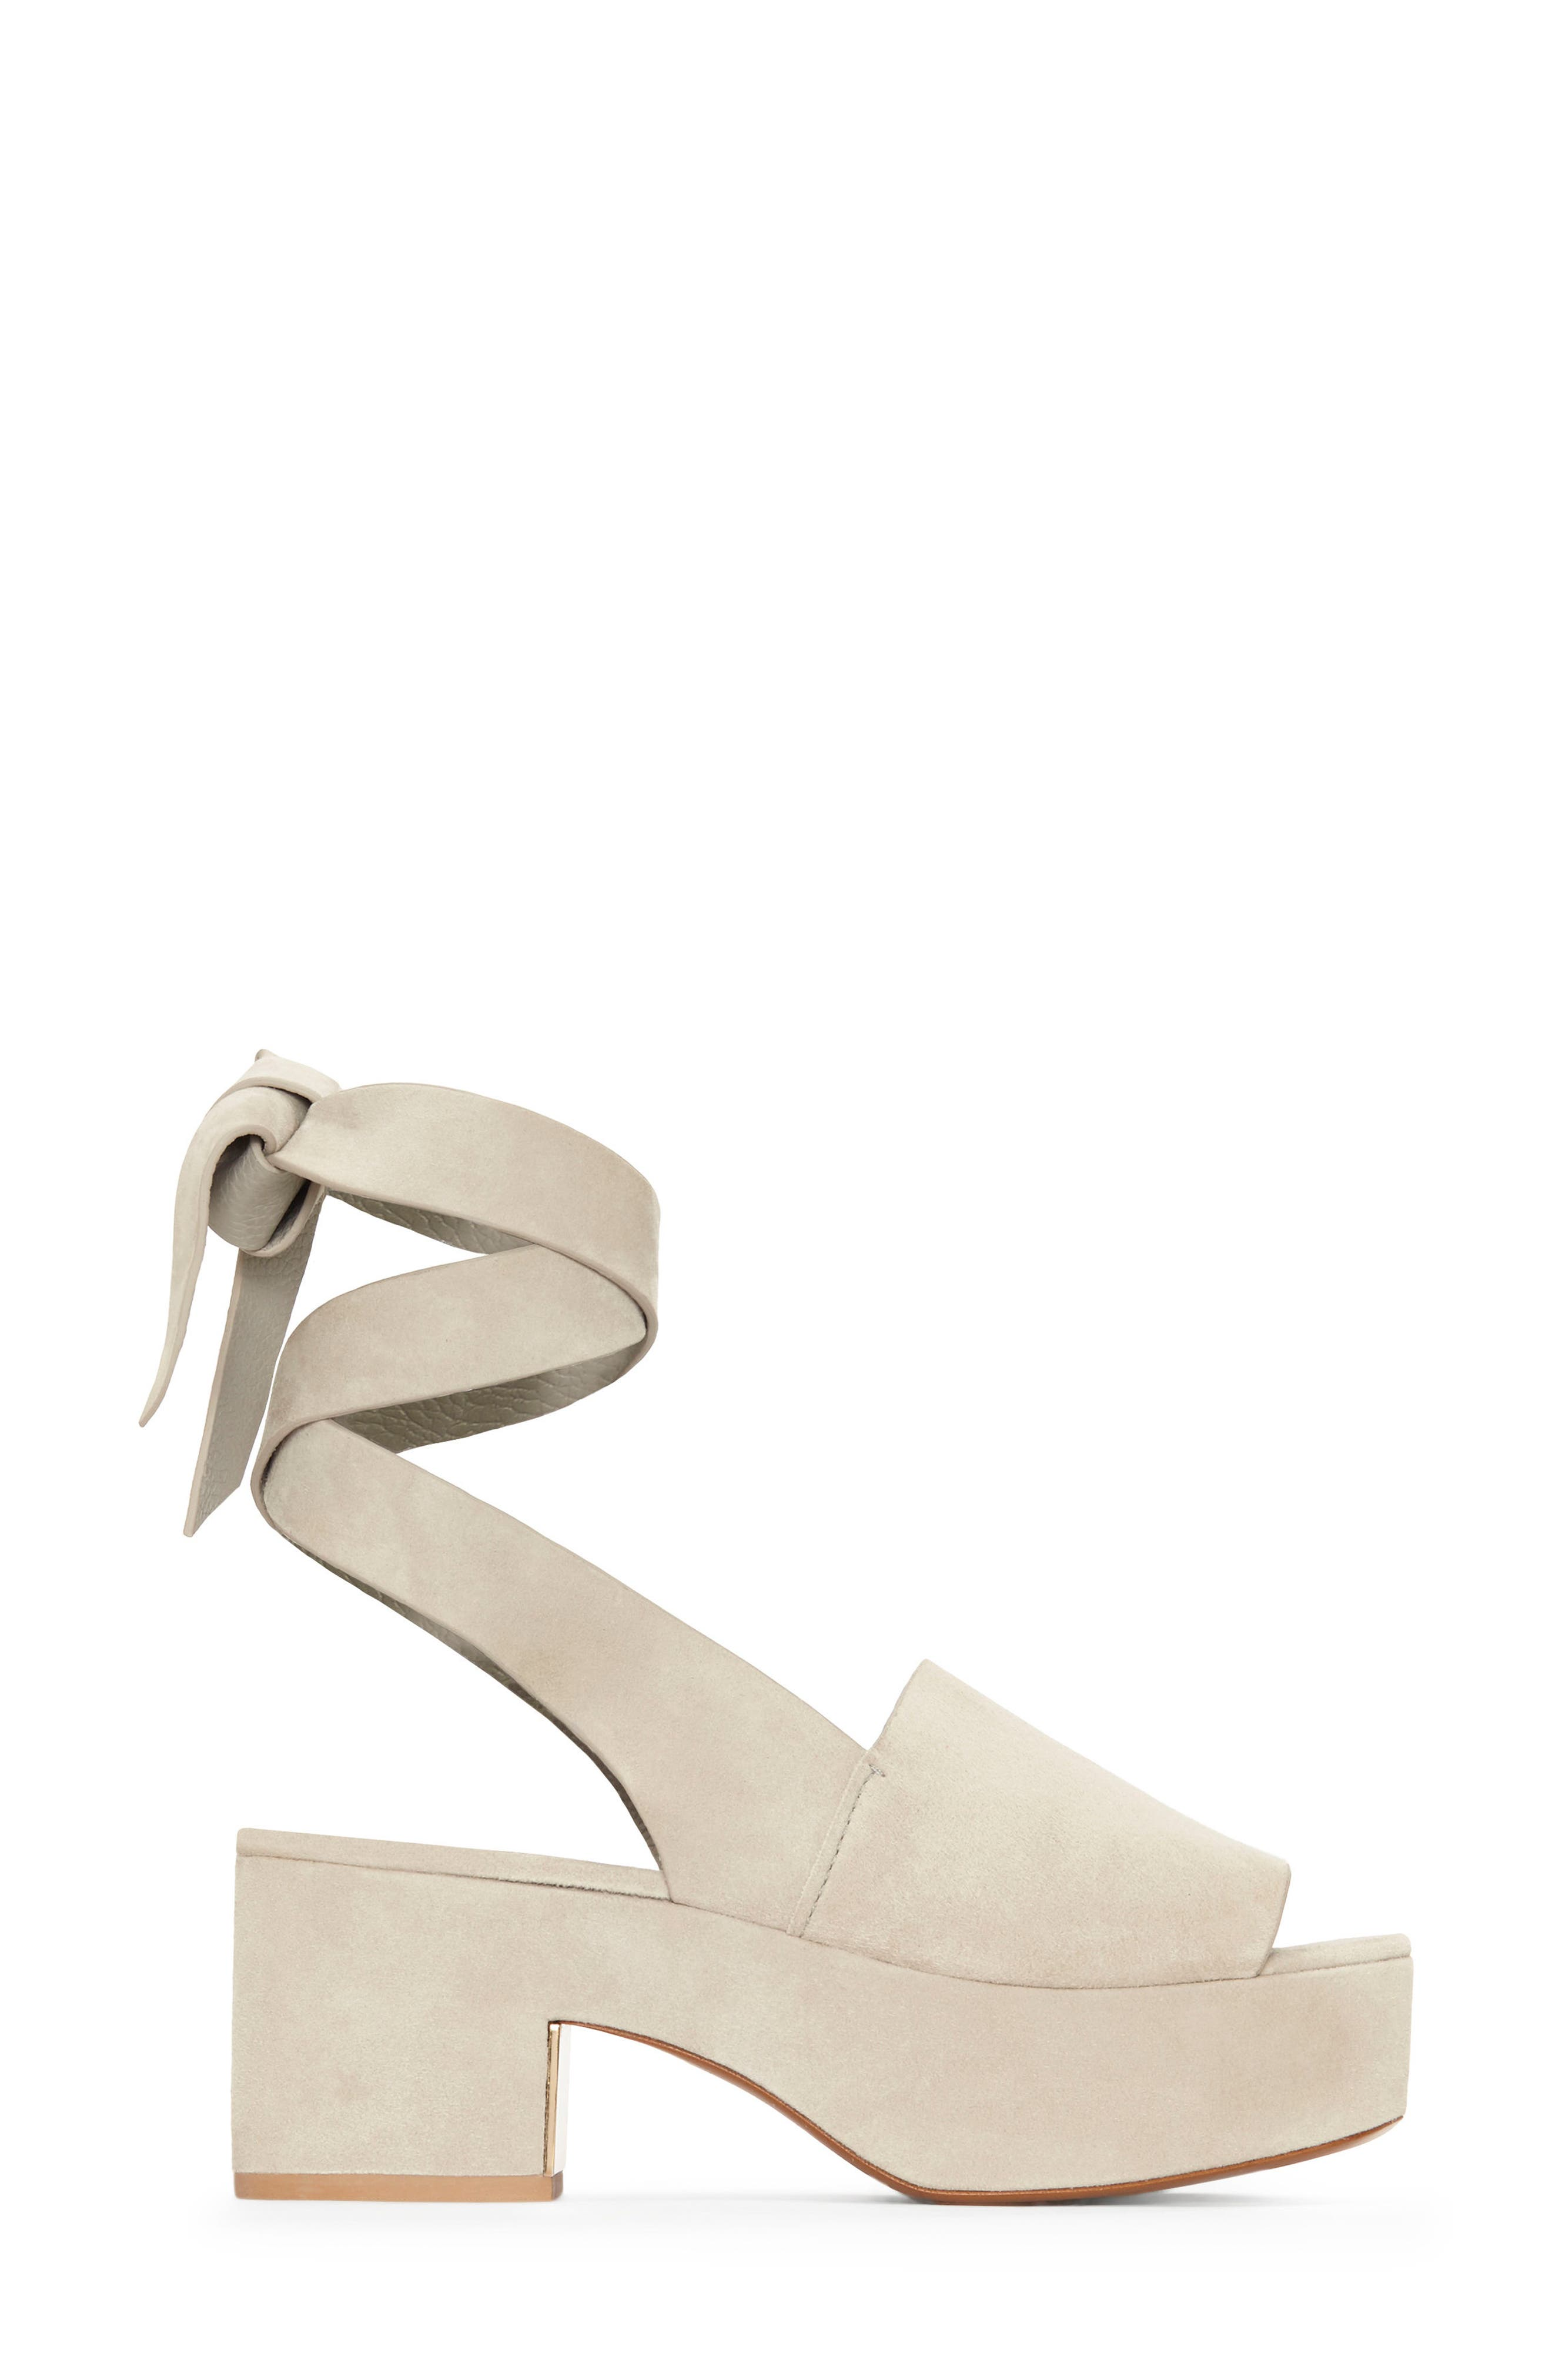 Alternate Image 1 Selected - Mercedes Castillo Darea Ankle Tie Platform Sandal (Women)